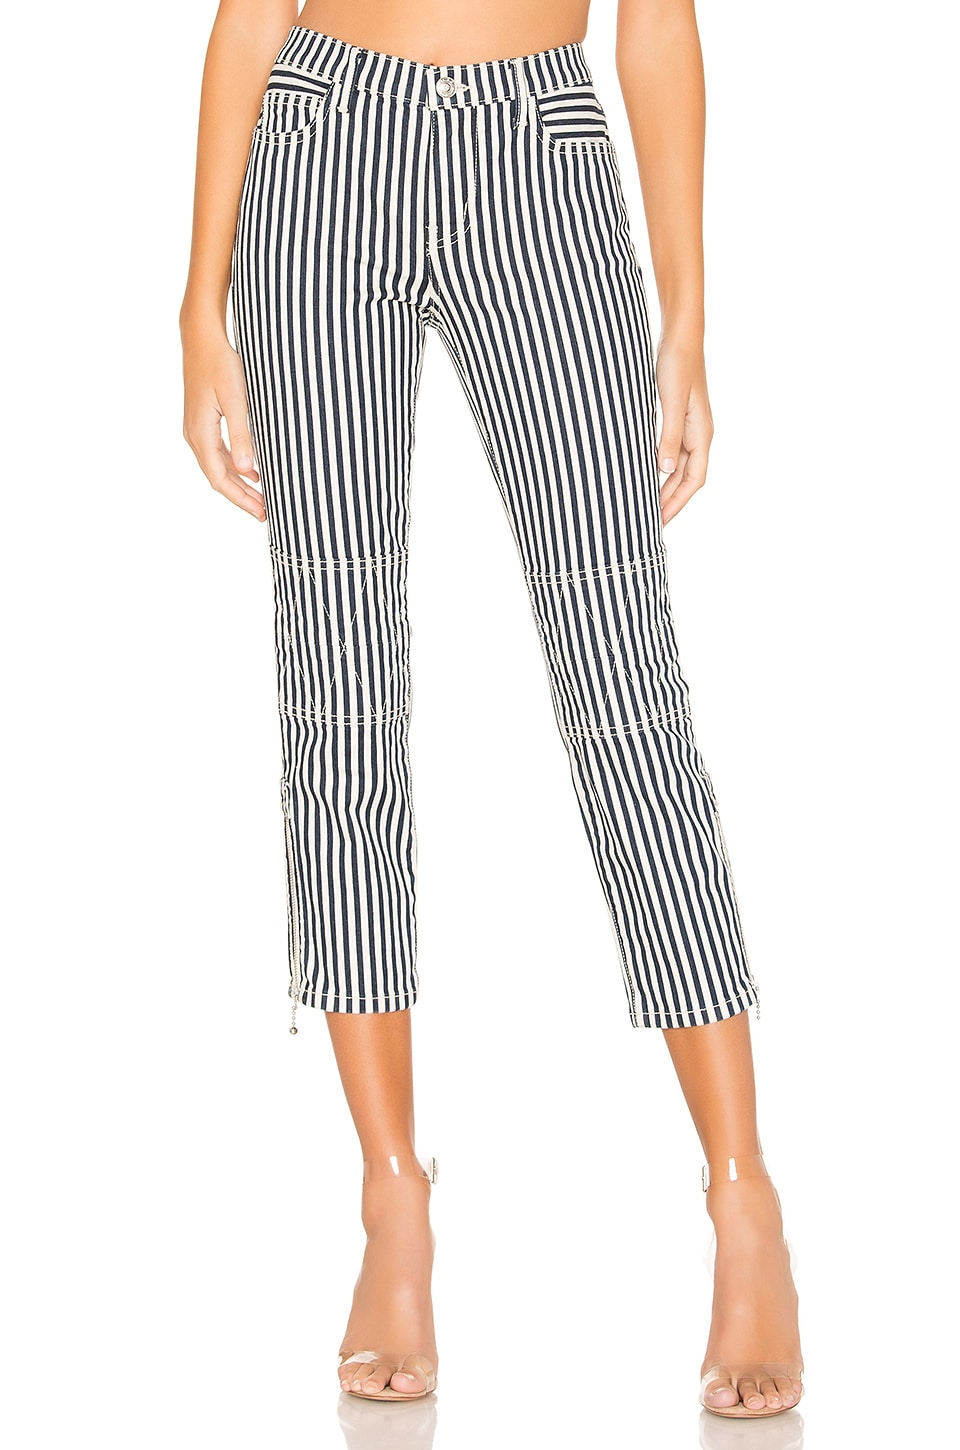 Current/Elliott The Cropped Lexton en Modern Stripe